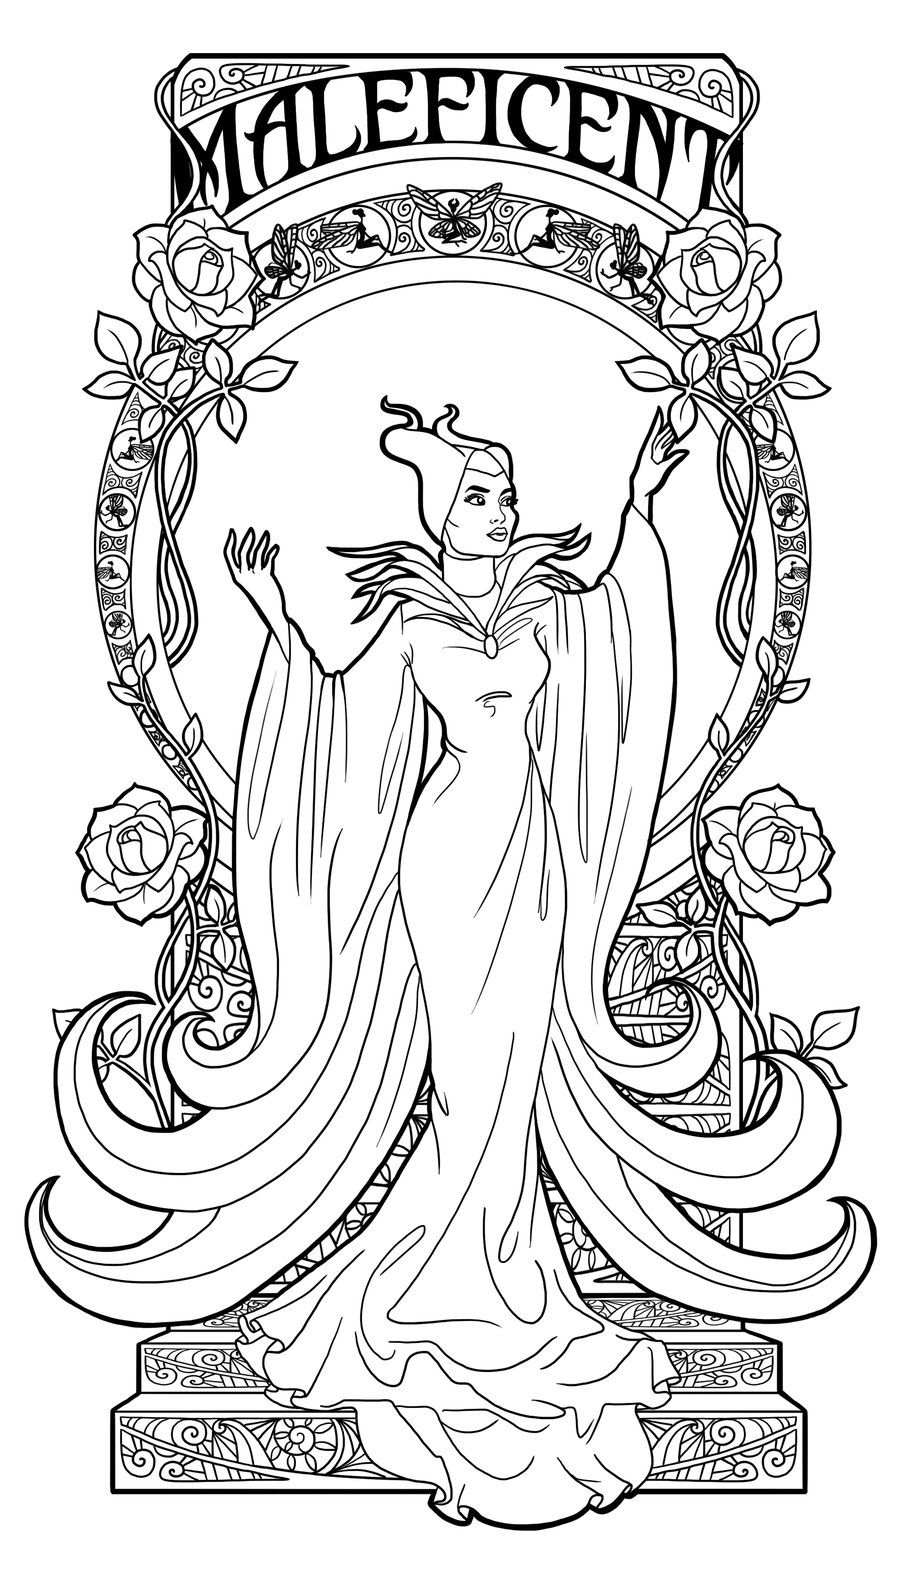 Maleficent - Art Nouveau - Lineart by Paola-Tosca.deviantart.com on ...